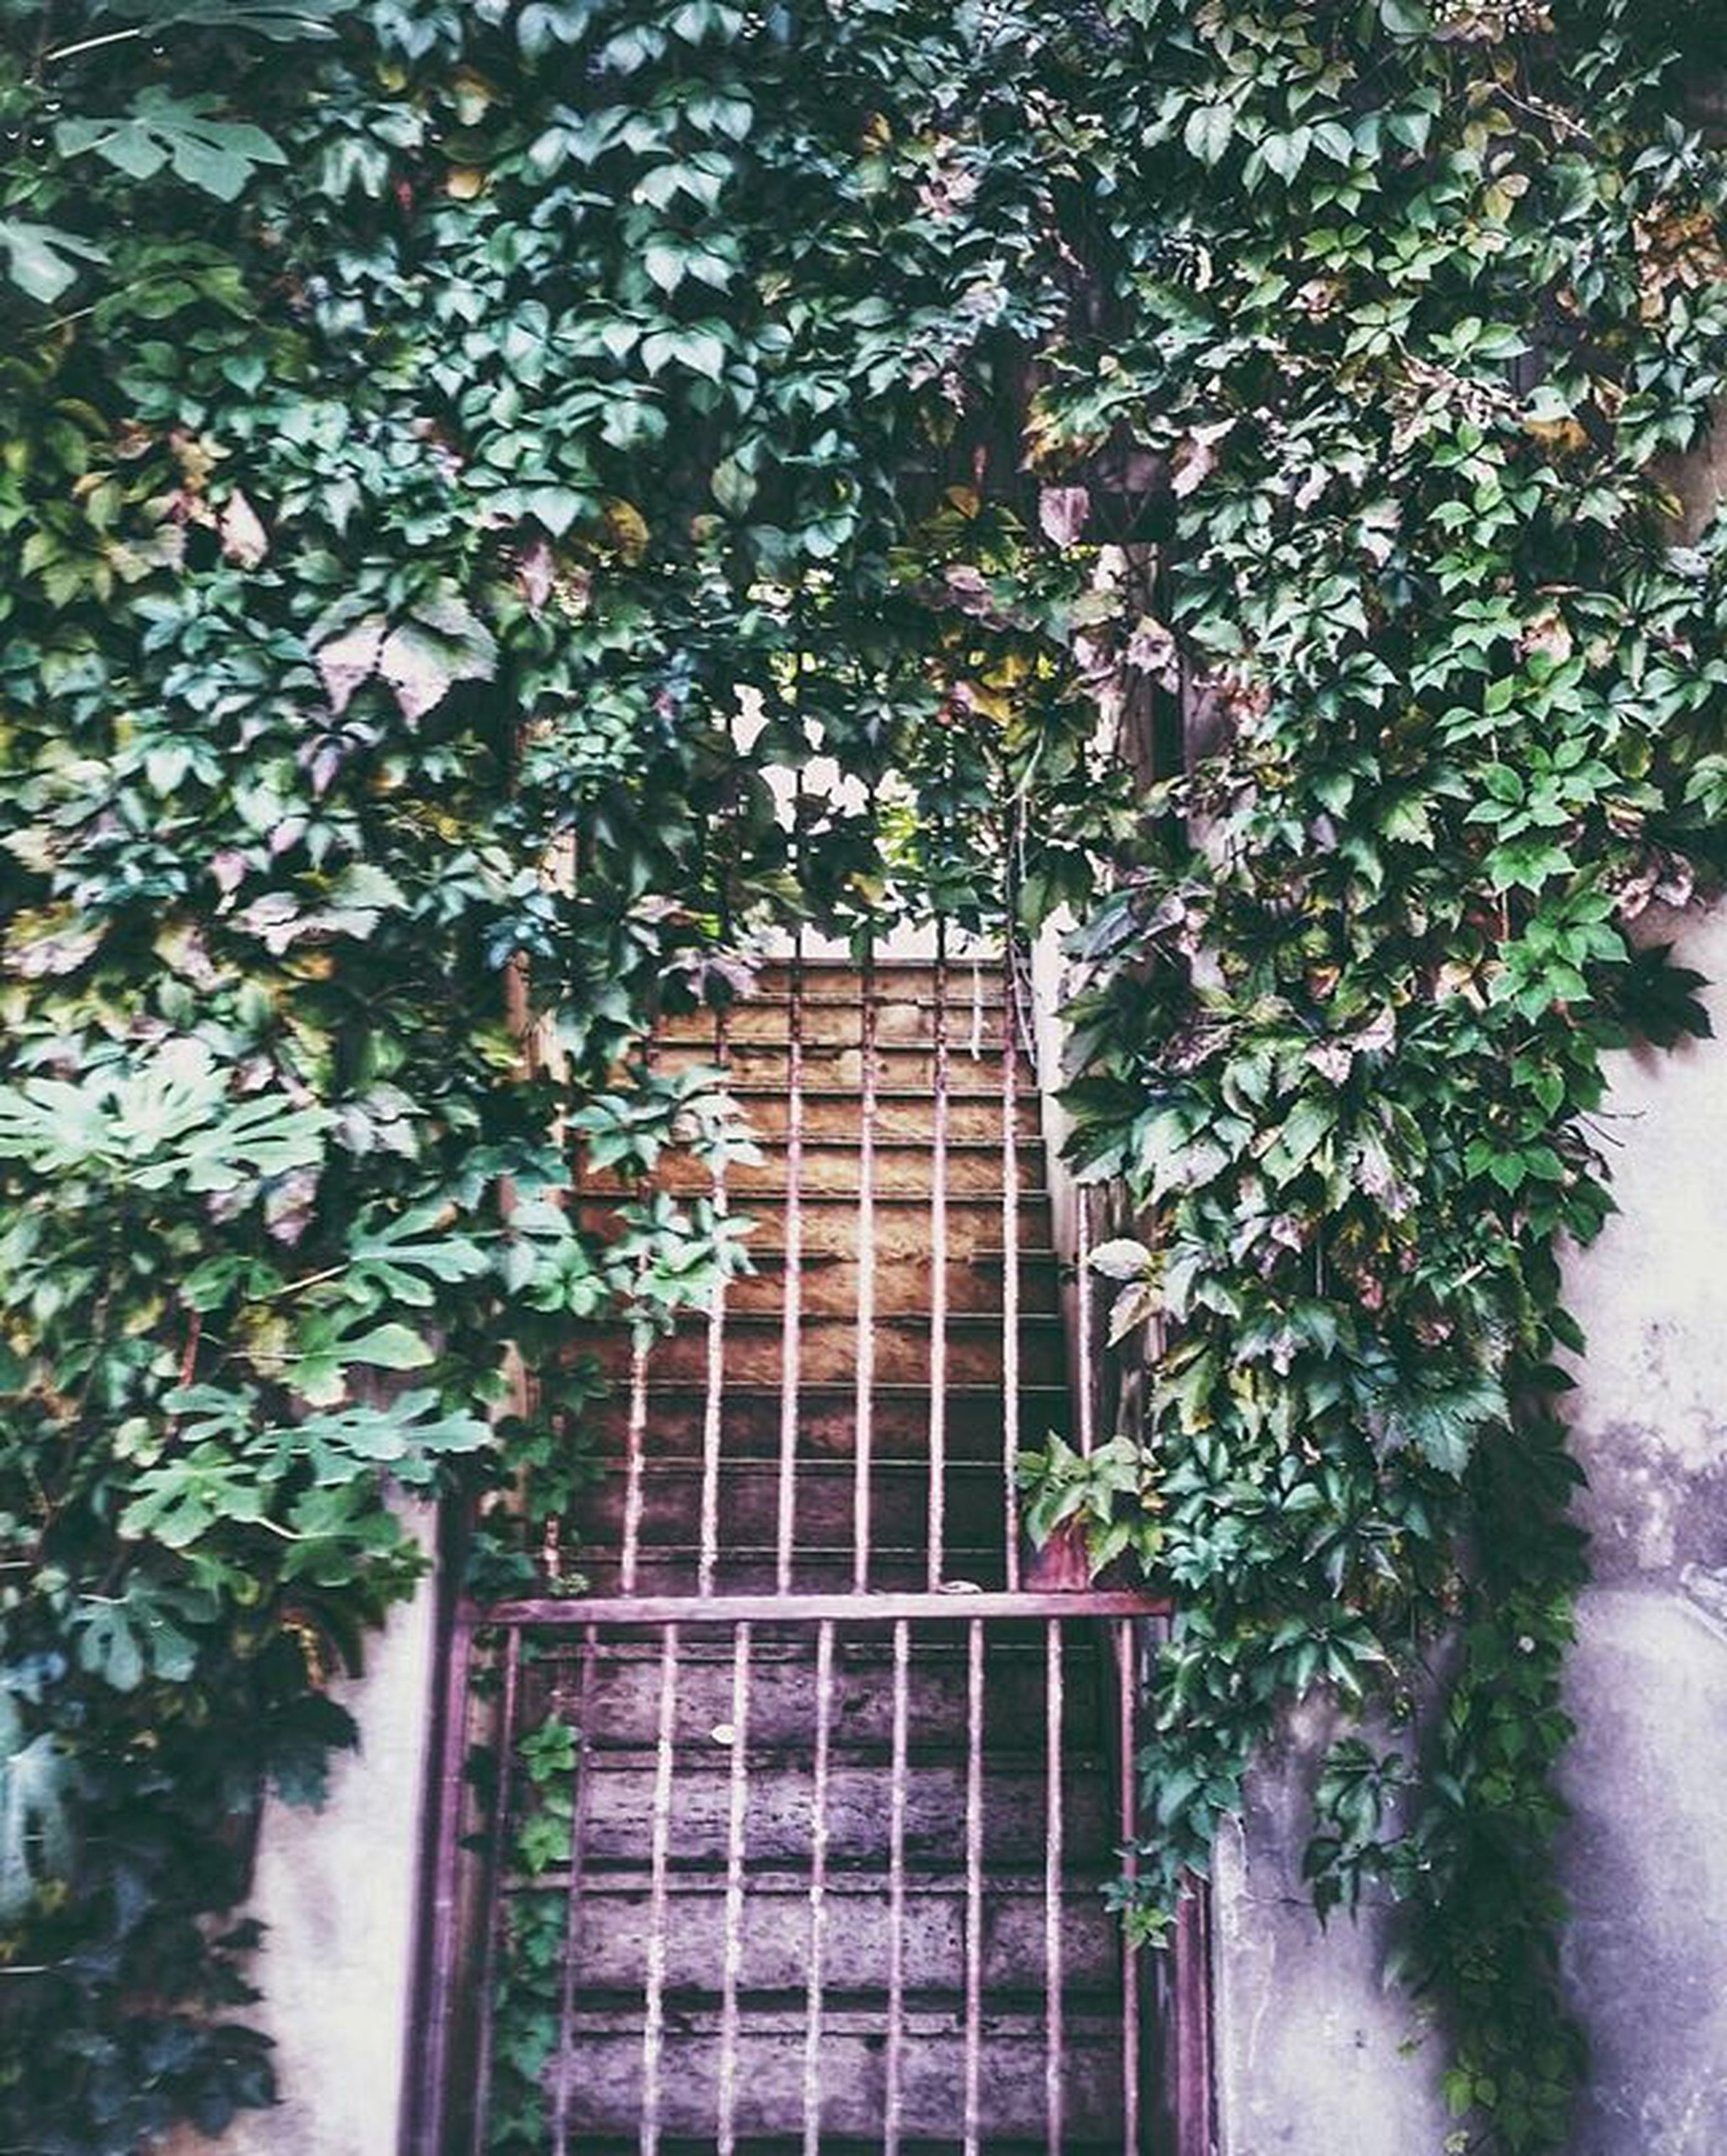 building exterior, architecture, built structure, growth, plant, window, tree, leaf, flower, potted plant, house, low angle view, ivy, building, branch, day, nature, residential structure, no people, green color